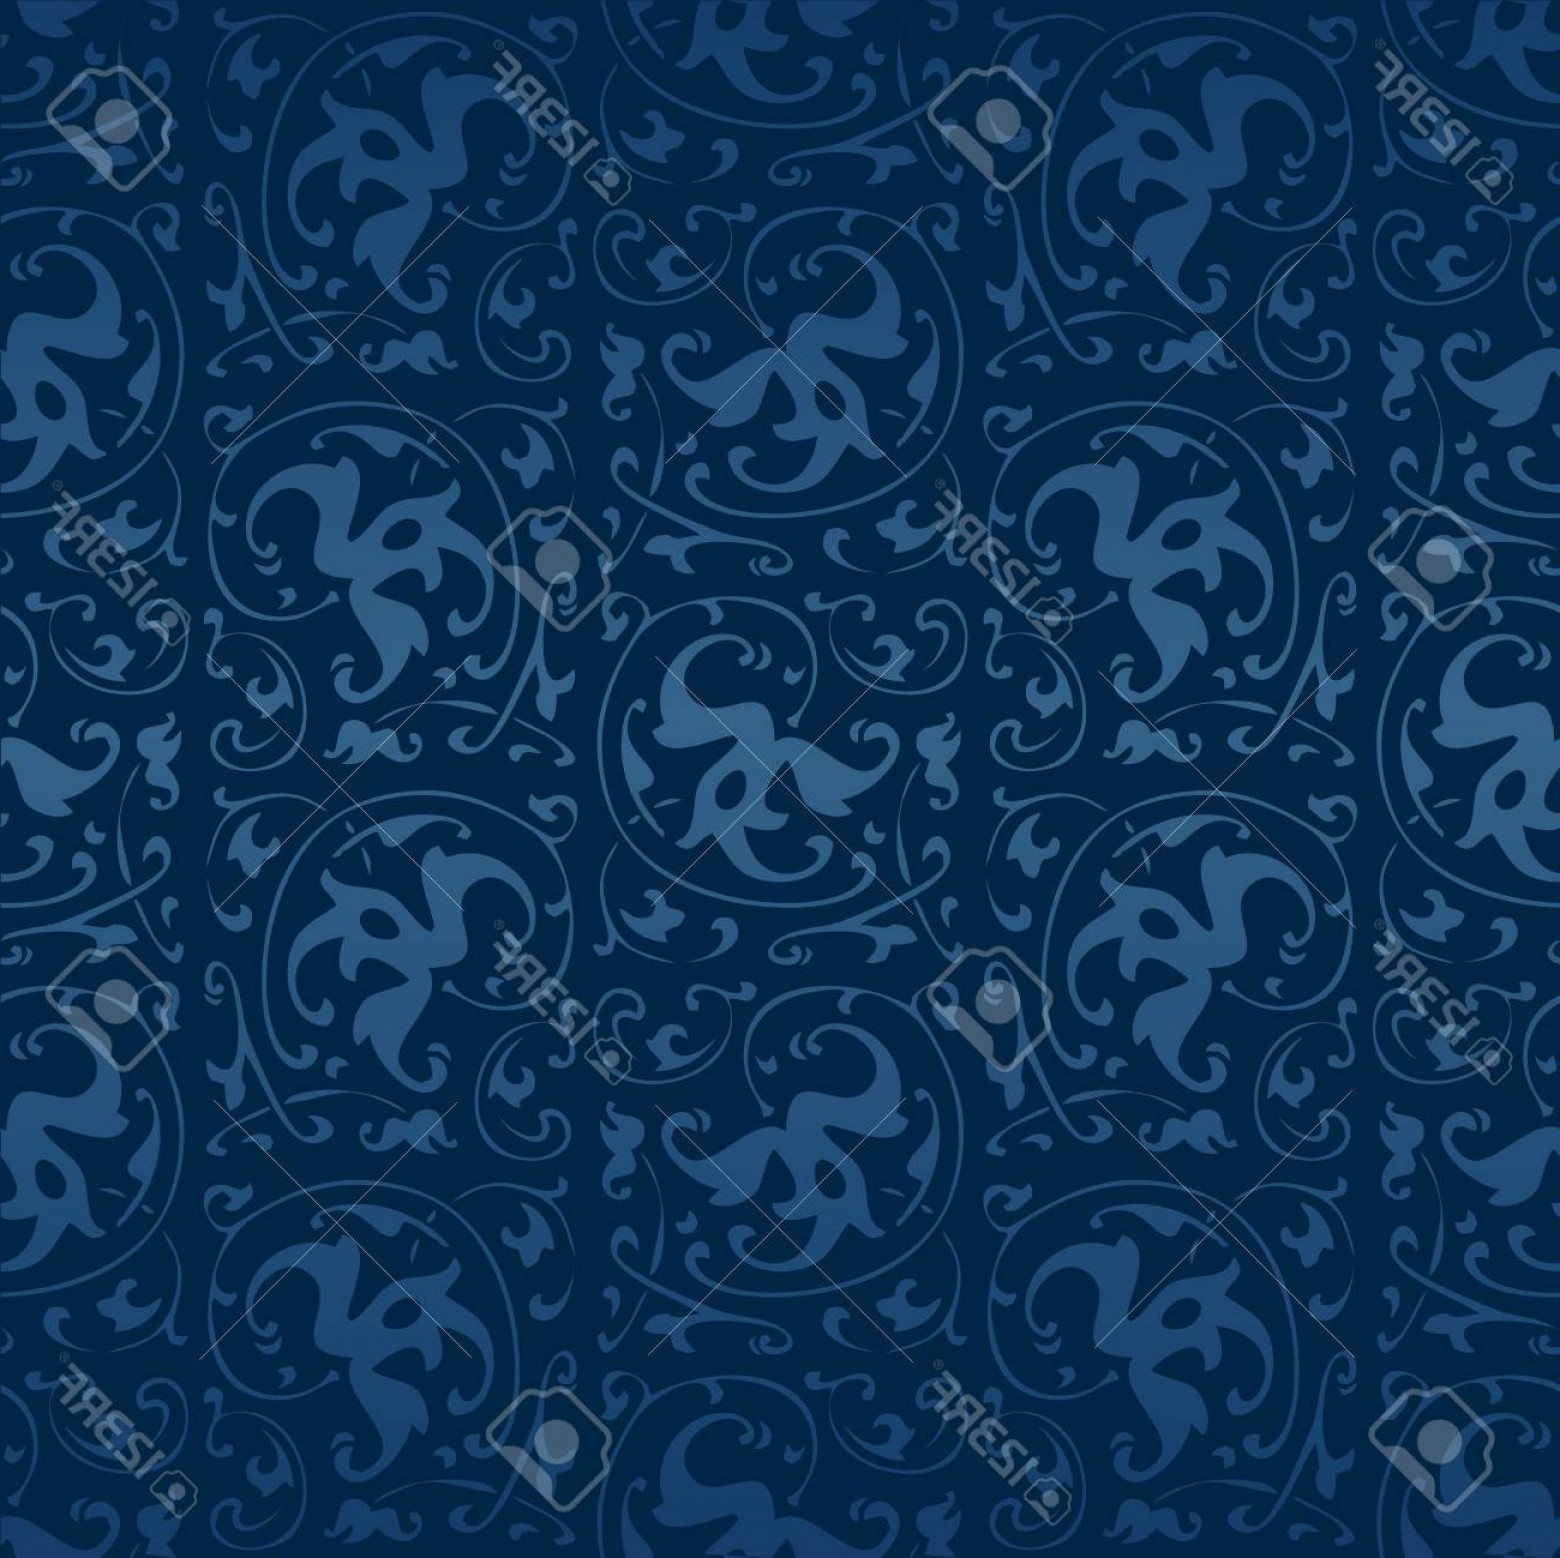 Vector Flourish Backgrounds: Photostock Vector Seamless Blue Vintage Sytle Flourish Vector Background